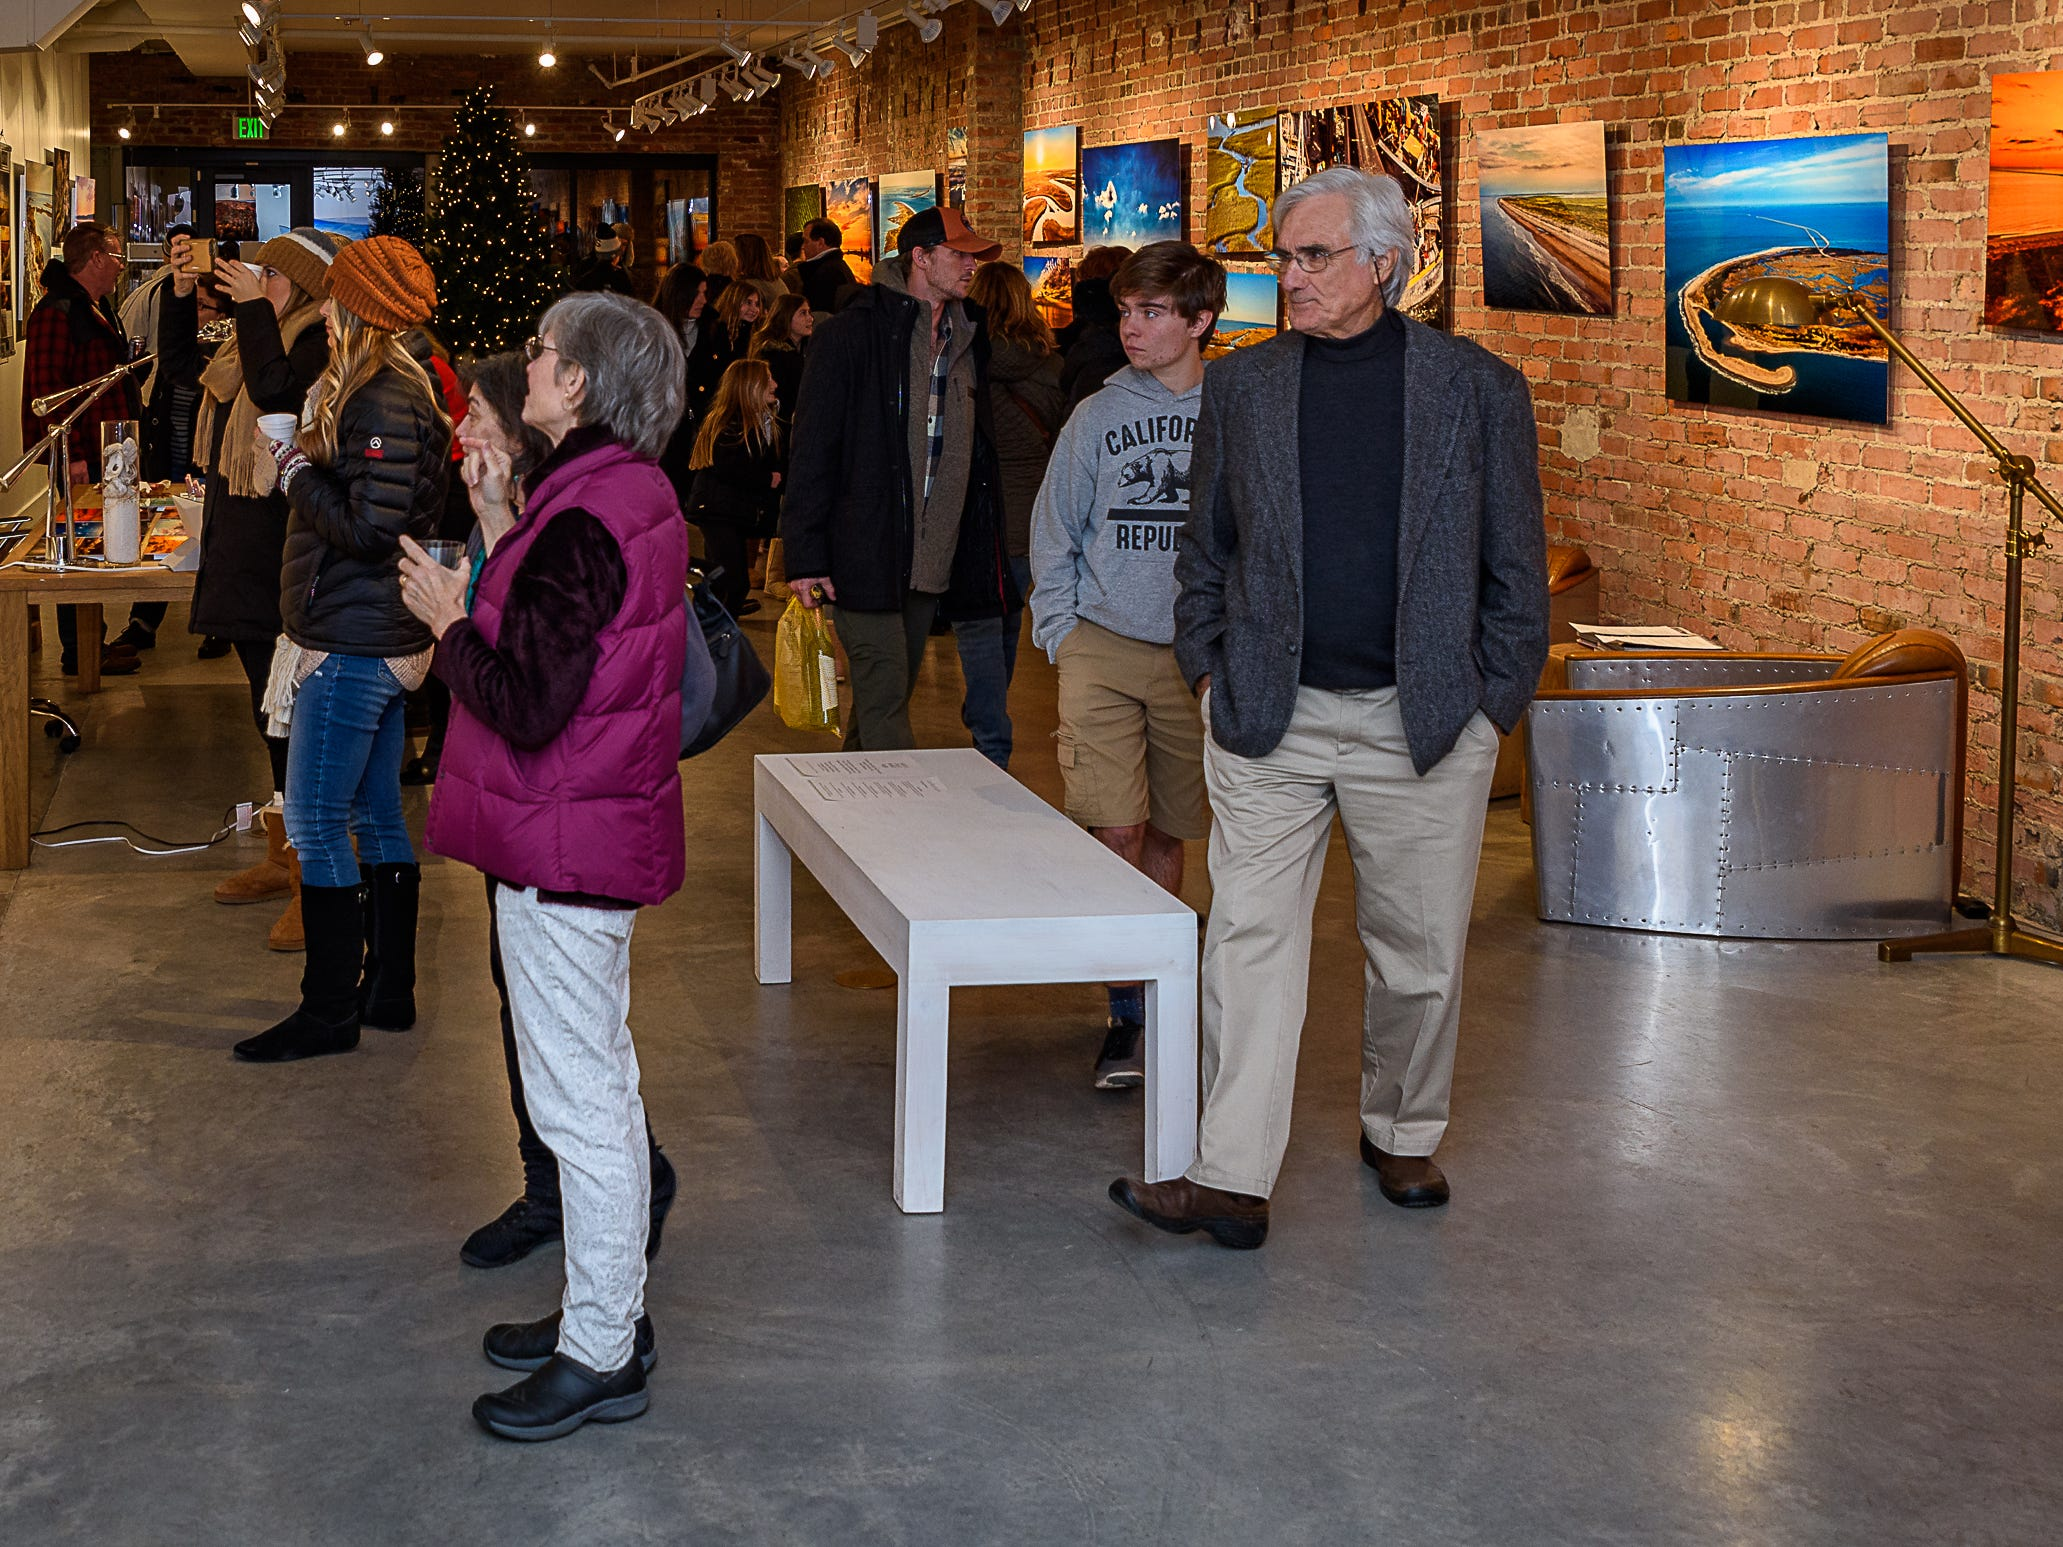 At Altitude Gallery is always a popular spot during Festive Fridays in Cape Charles.